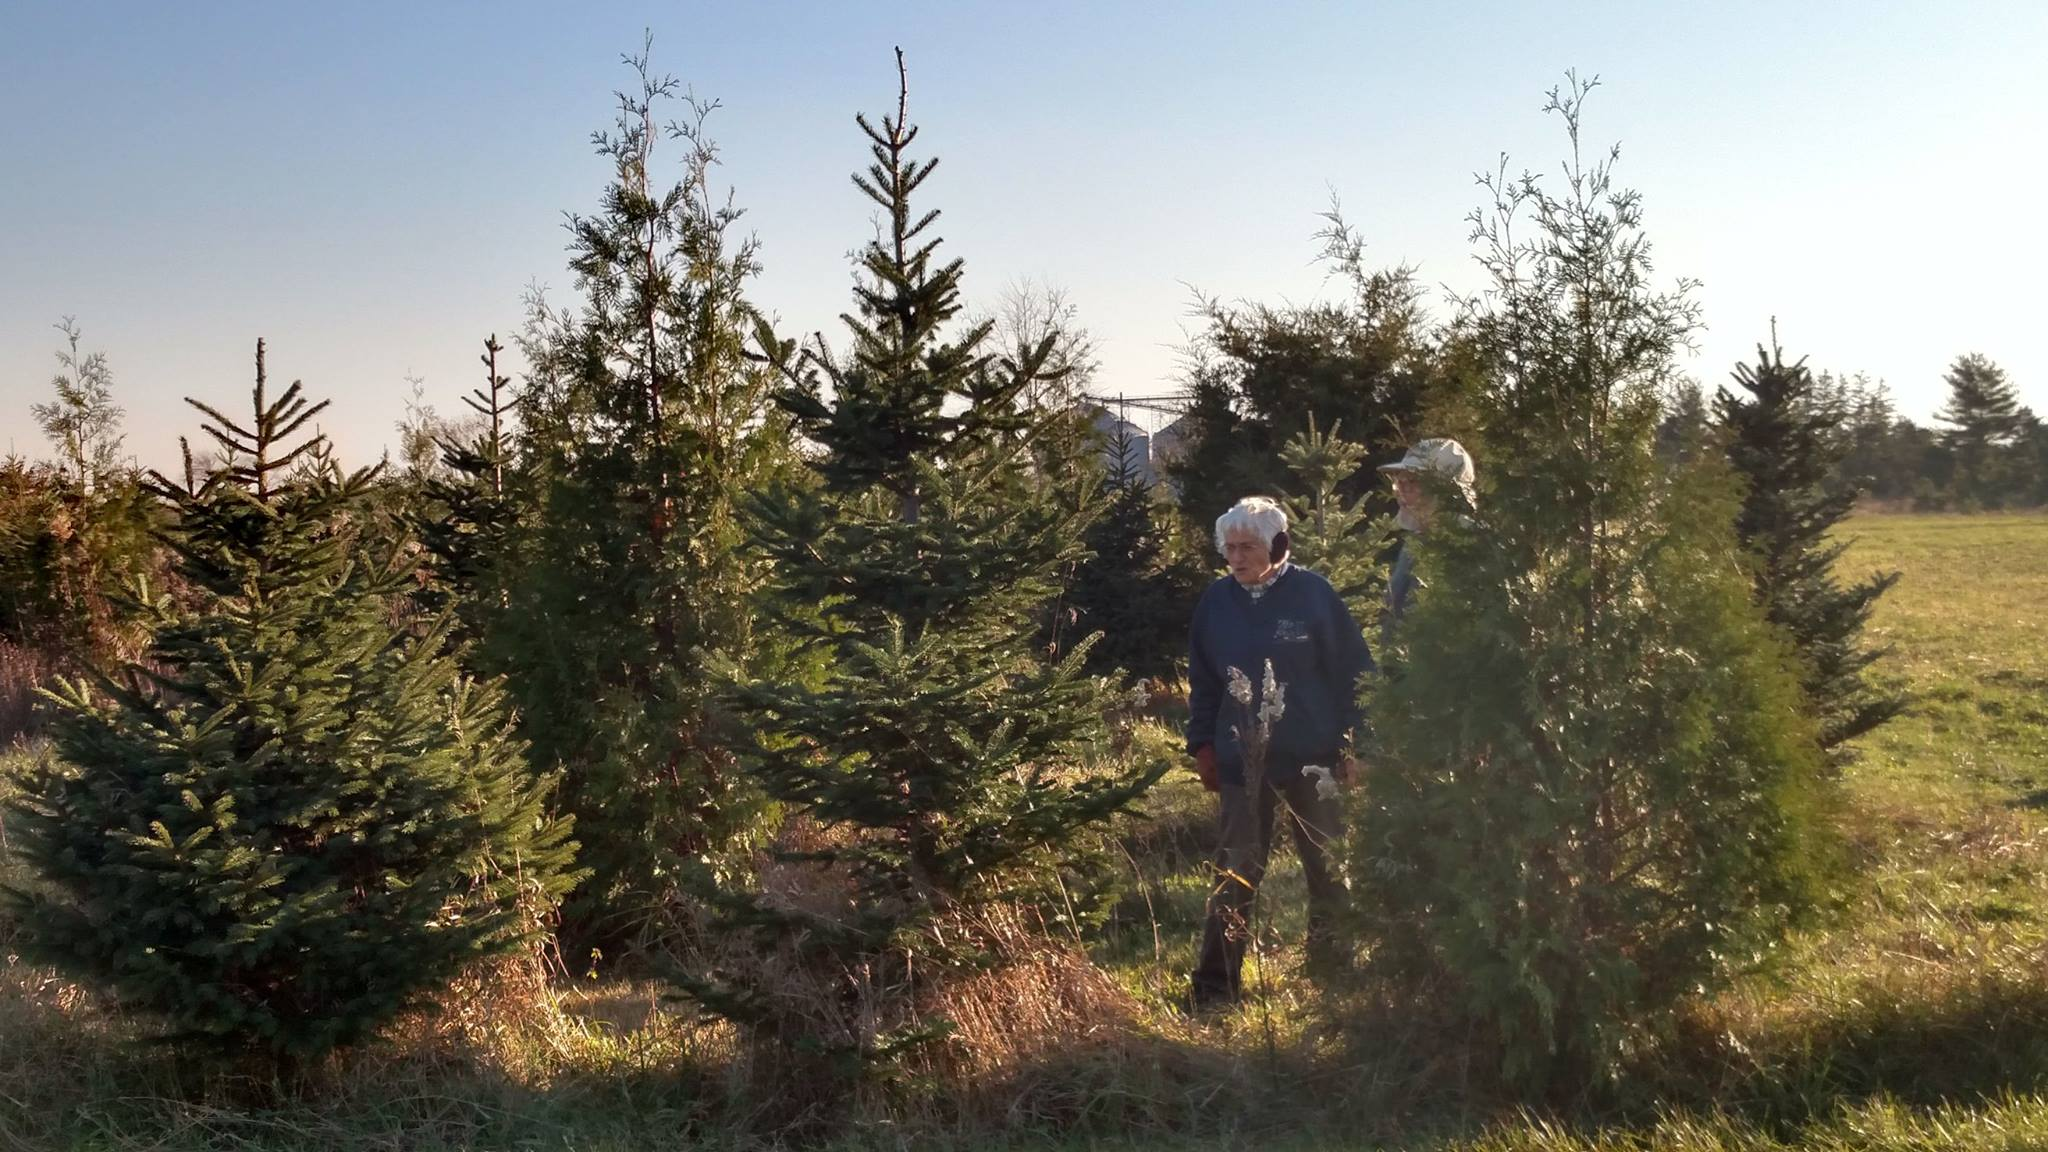 Finding A Fresh-cut Christmas Tree All About Tradition